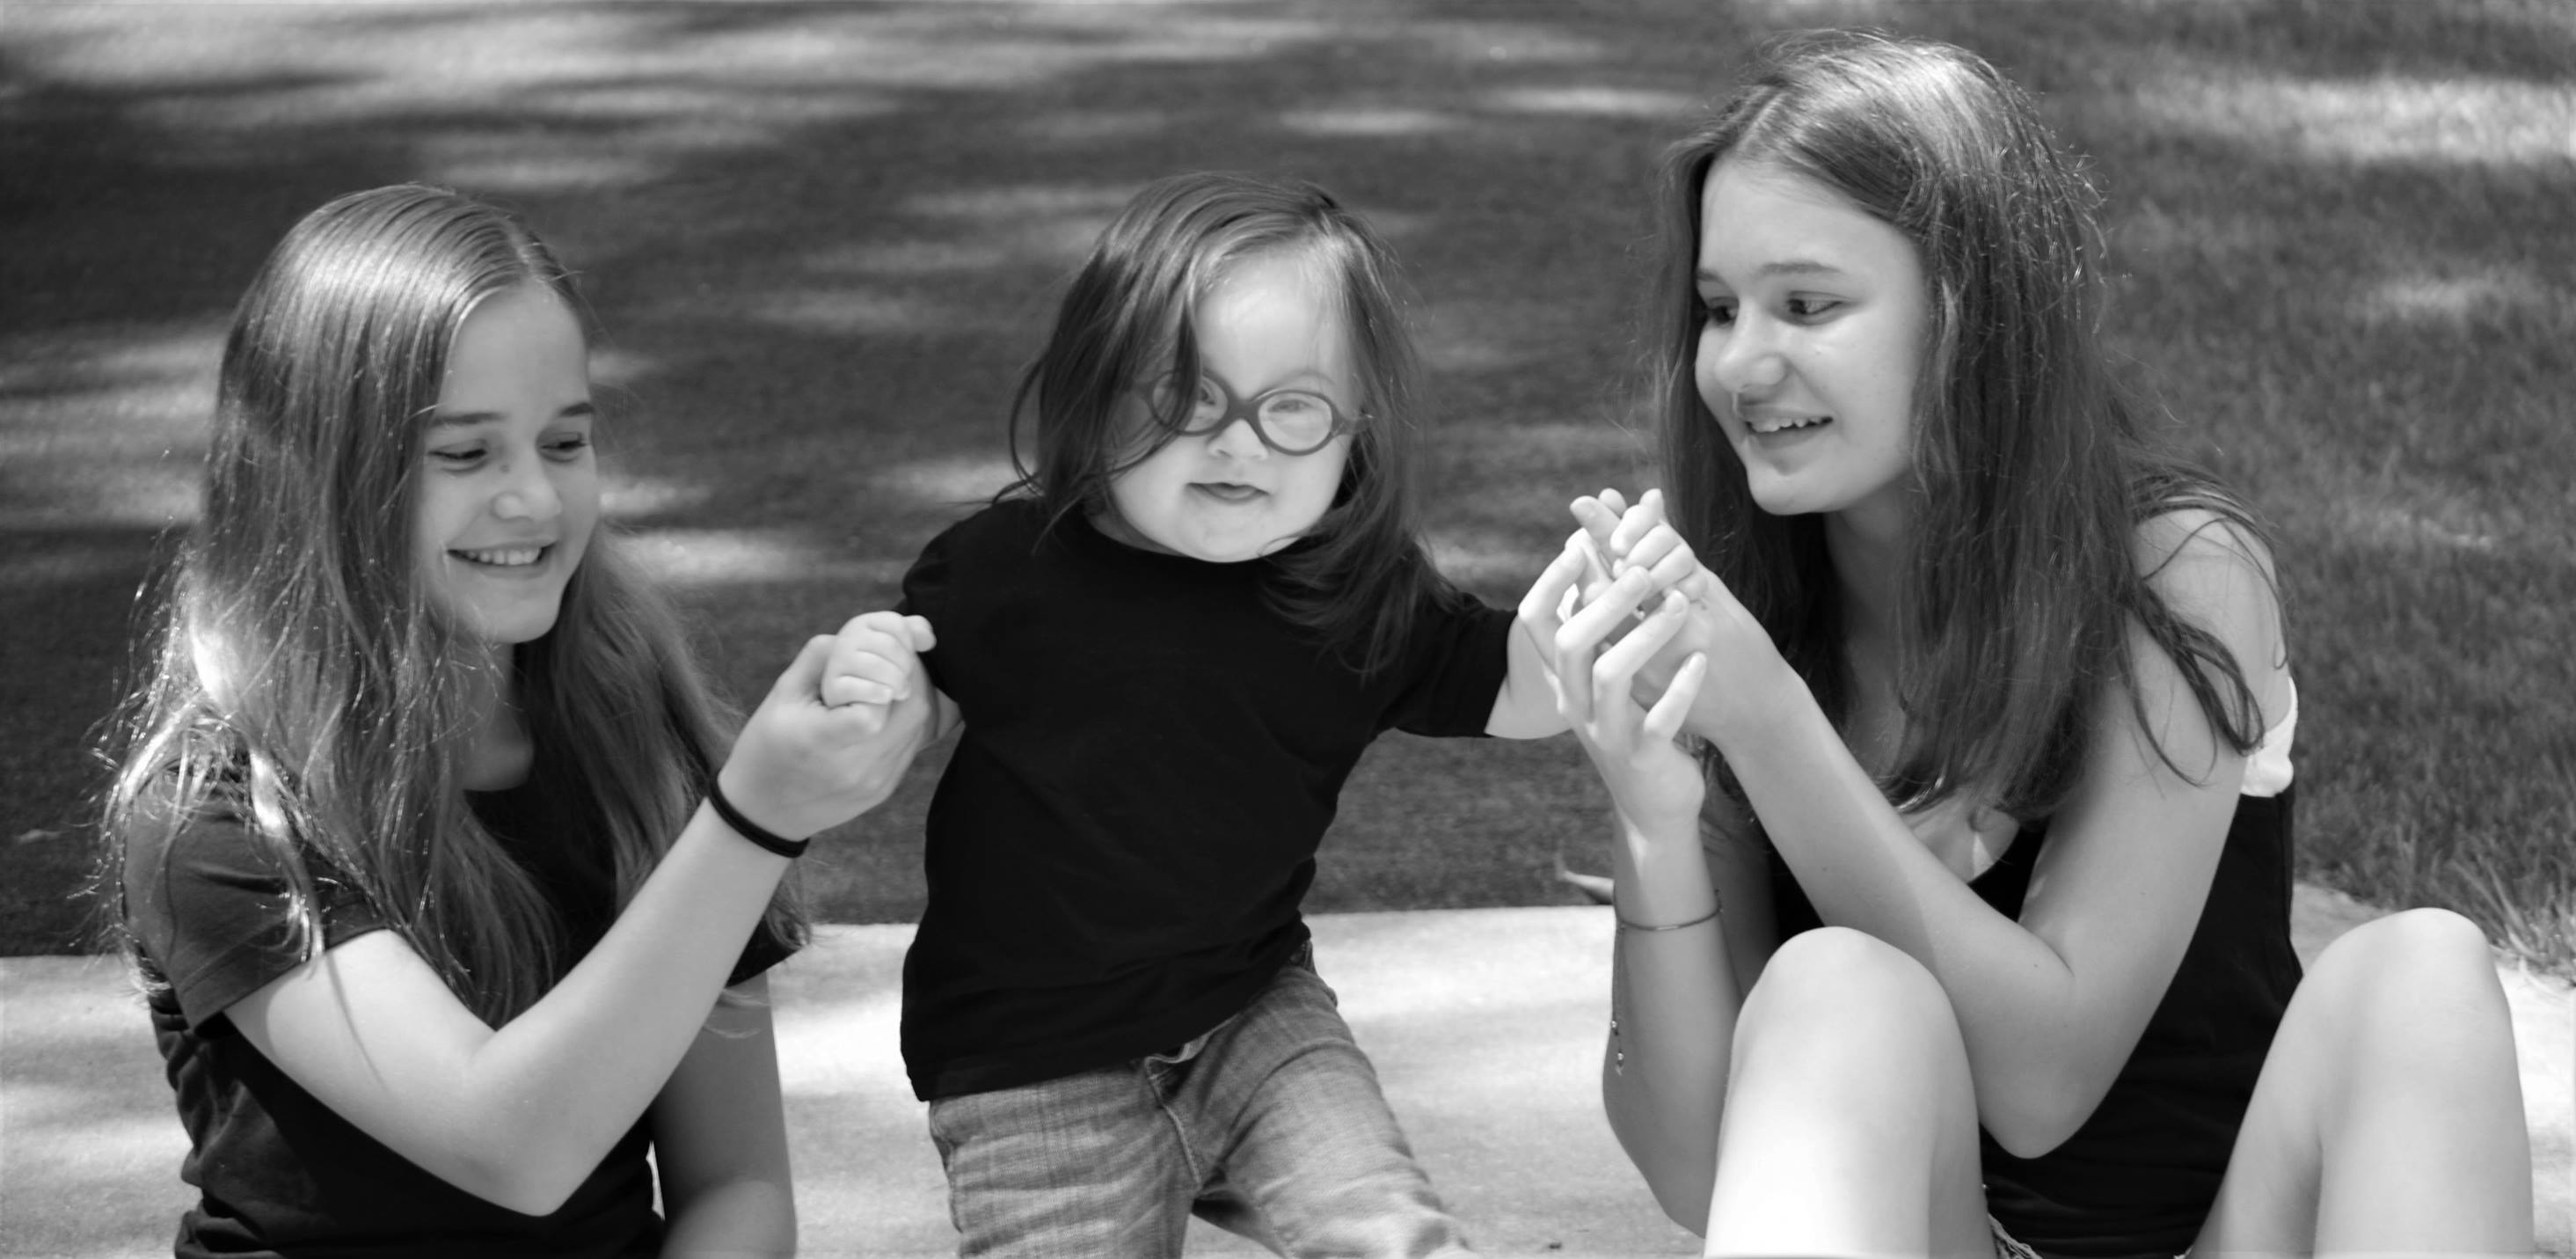 #DownSyndrome - Definition Causes And Characteristics #Health #FrizeMedia